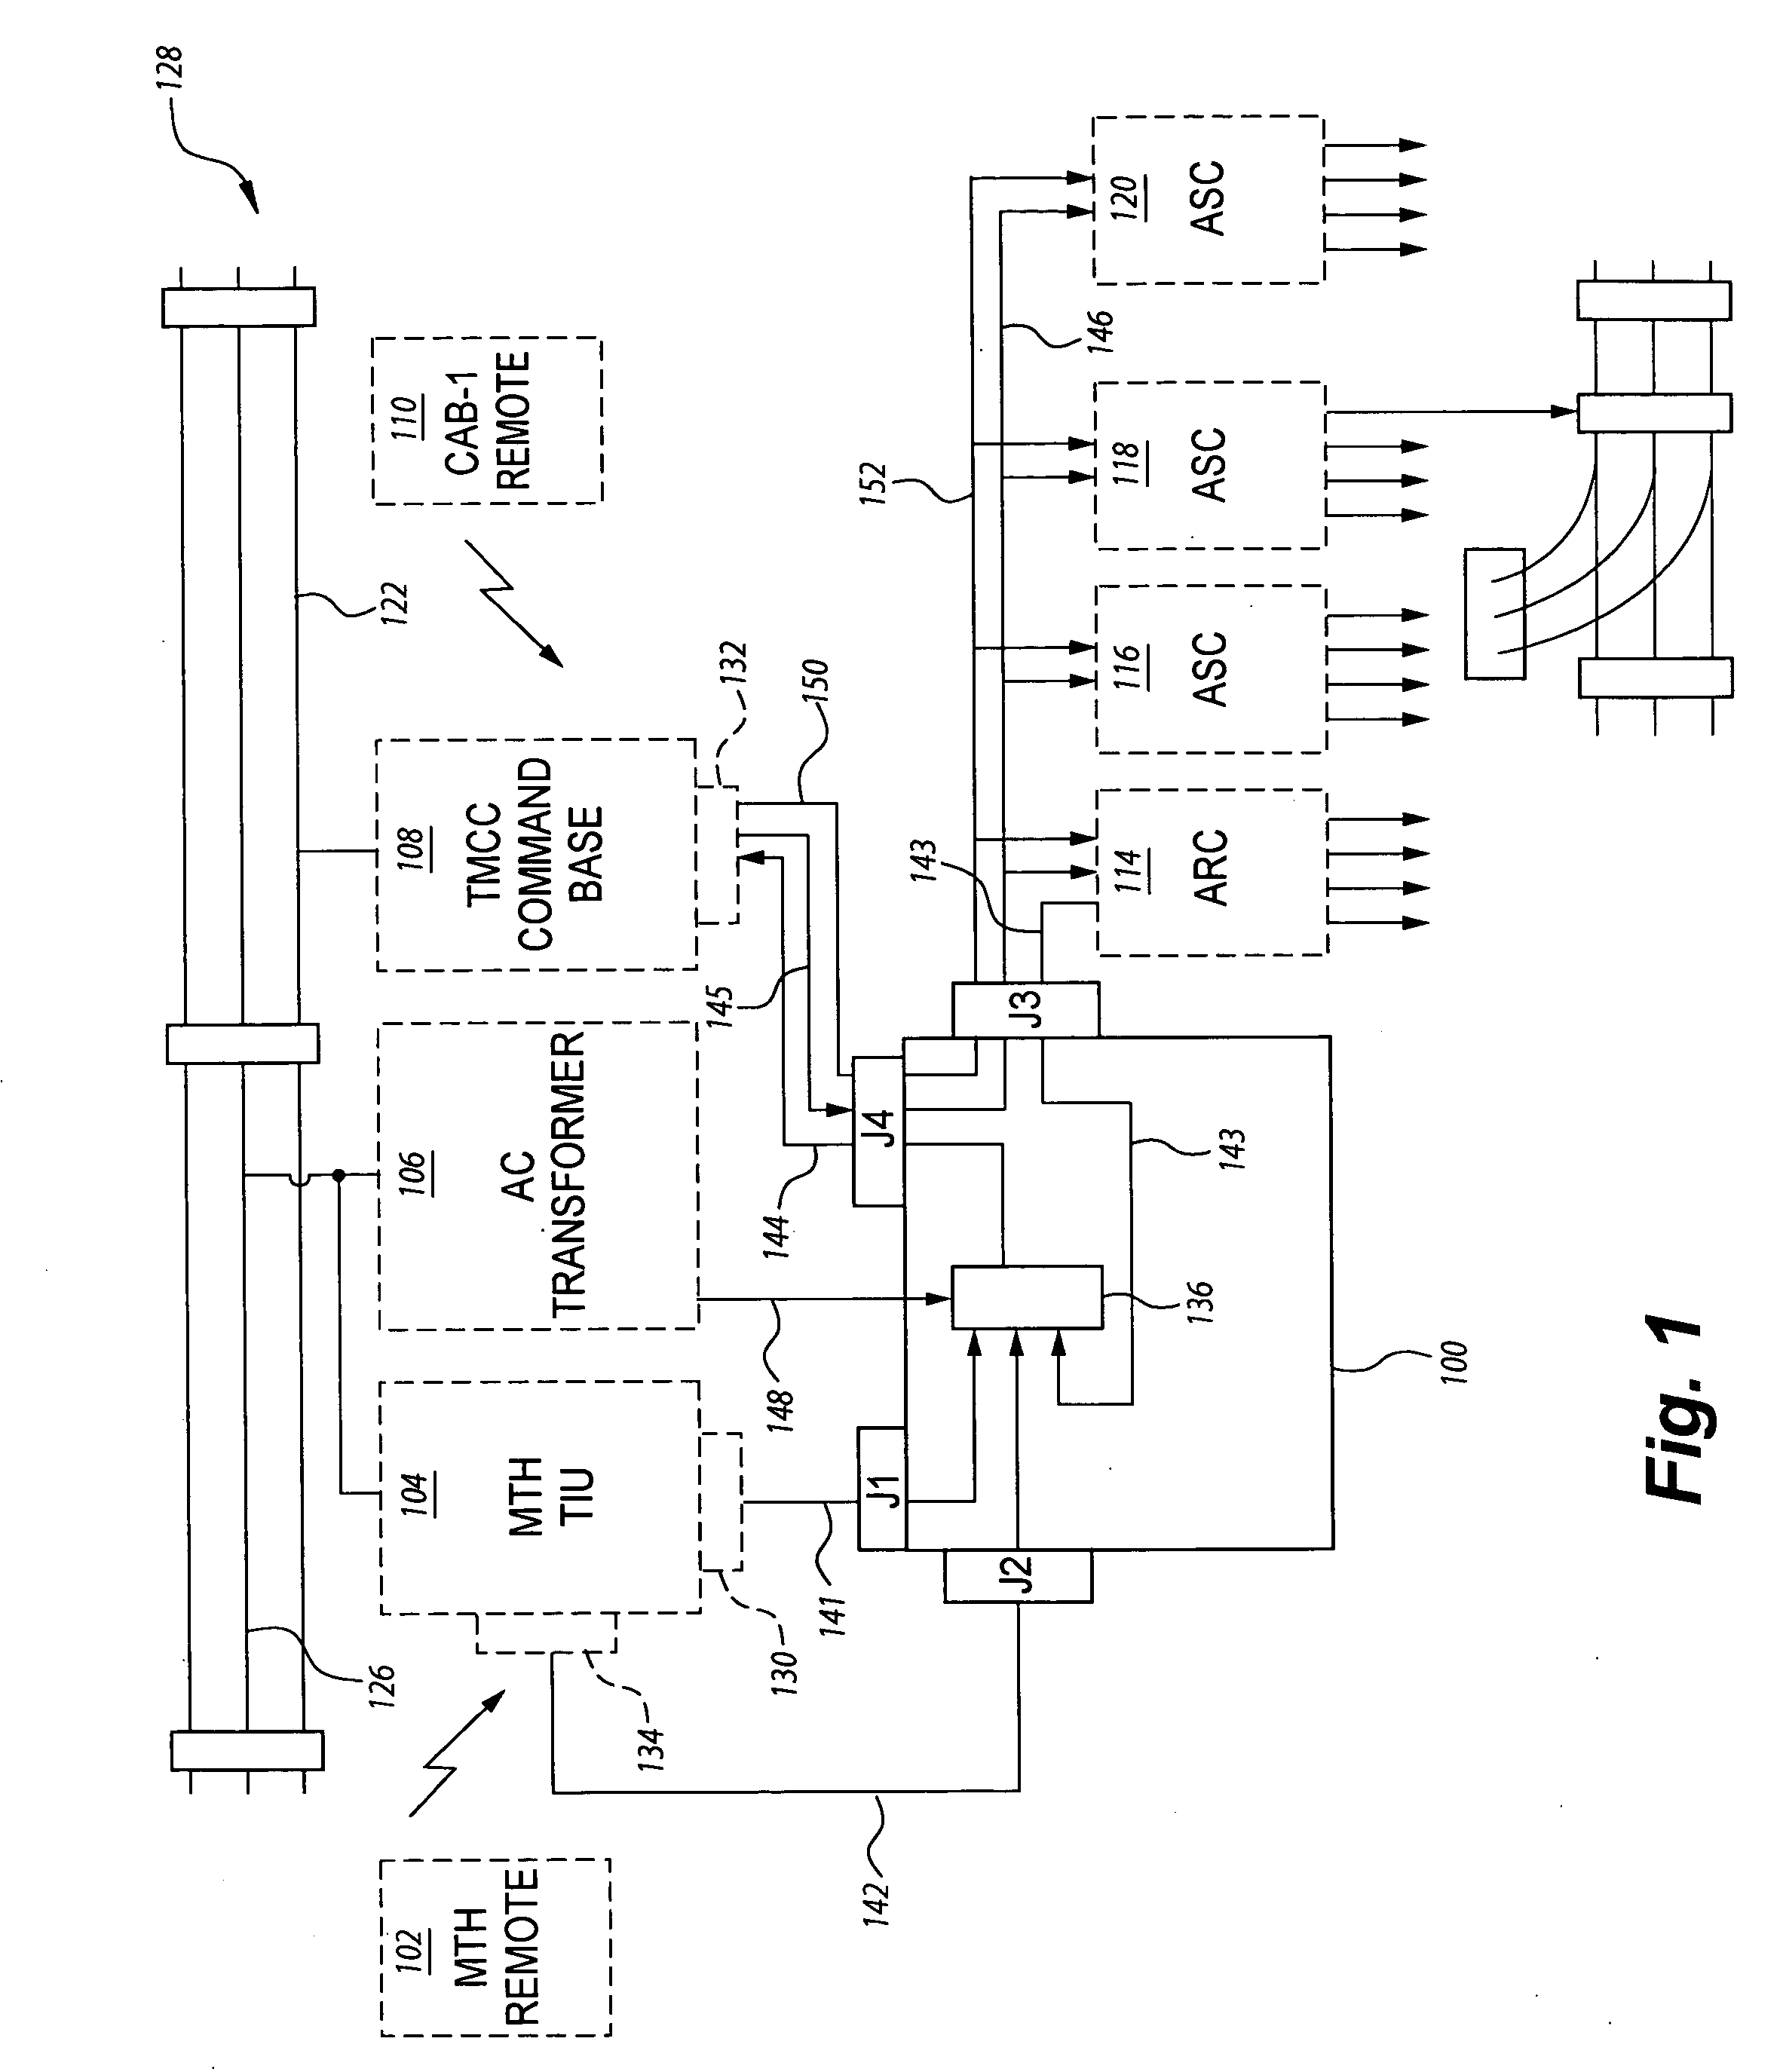 patent us model train controller interface device patent drawing